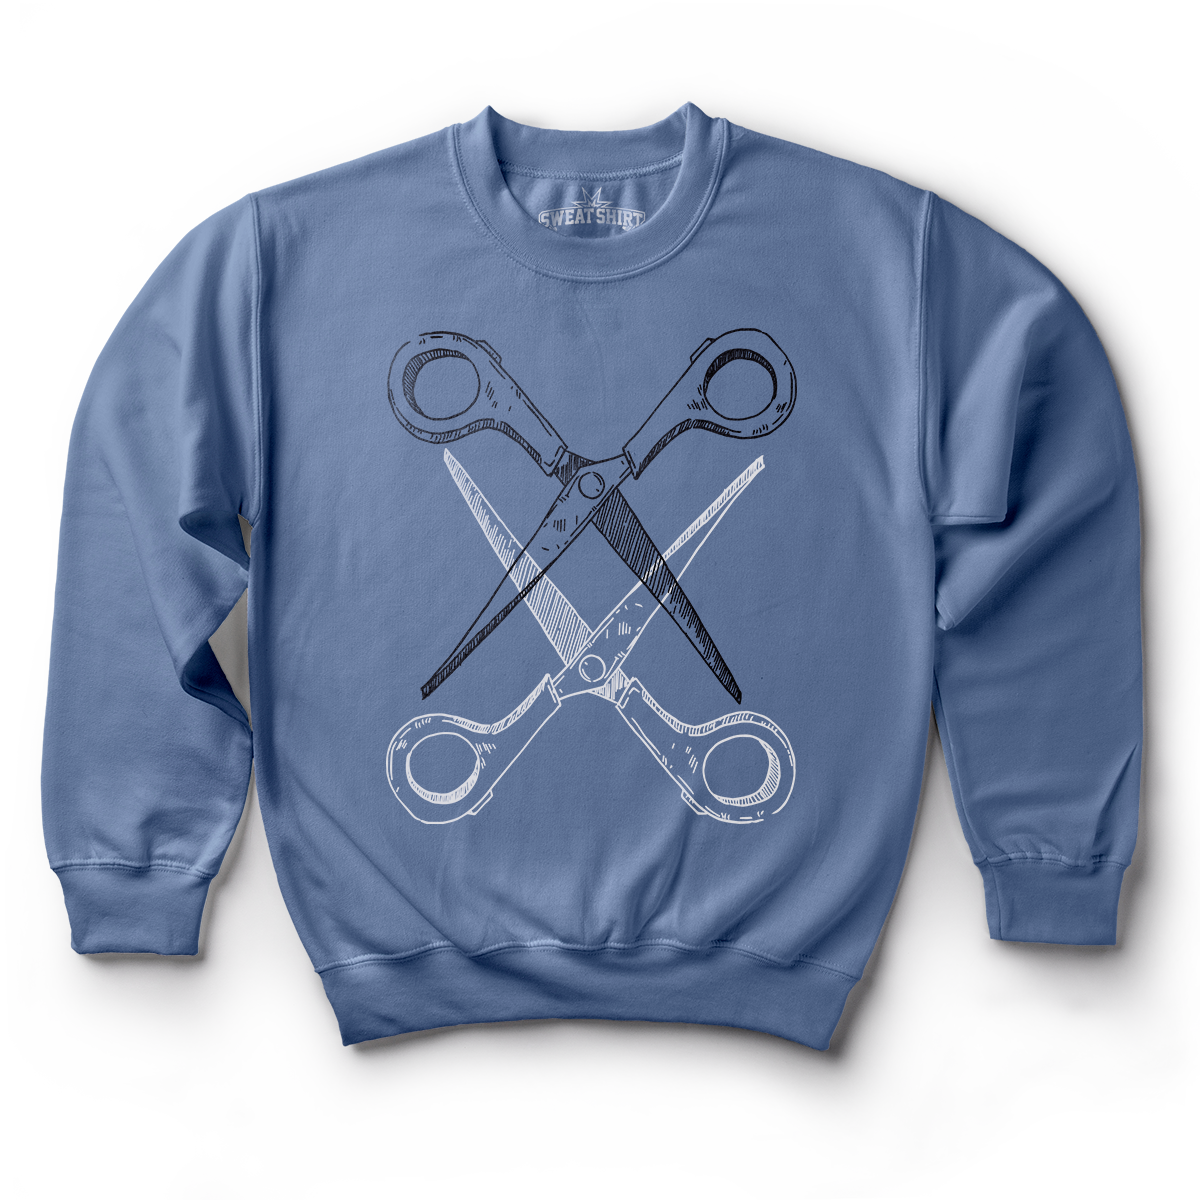 Blue sweatshirt with black and white scissoring graphic by Rory Midhani